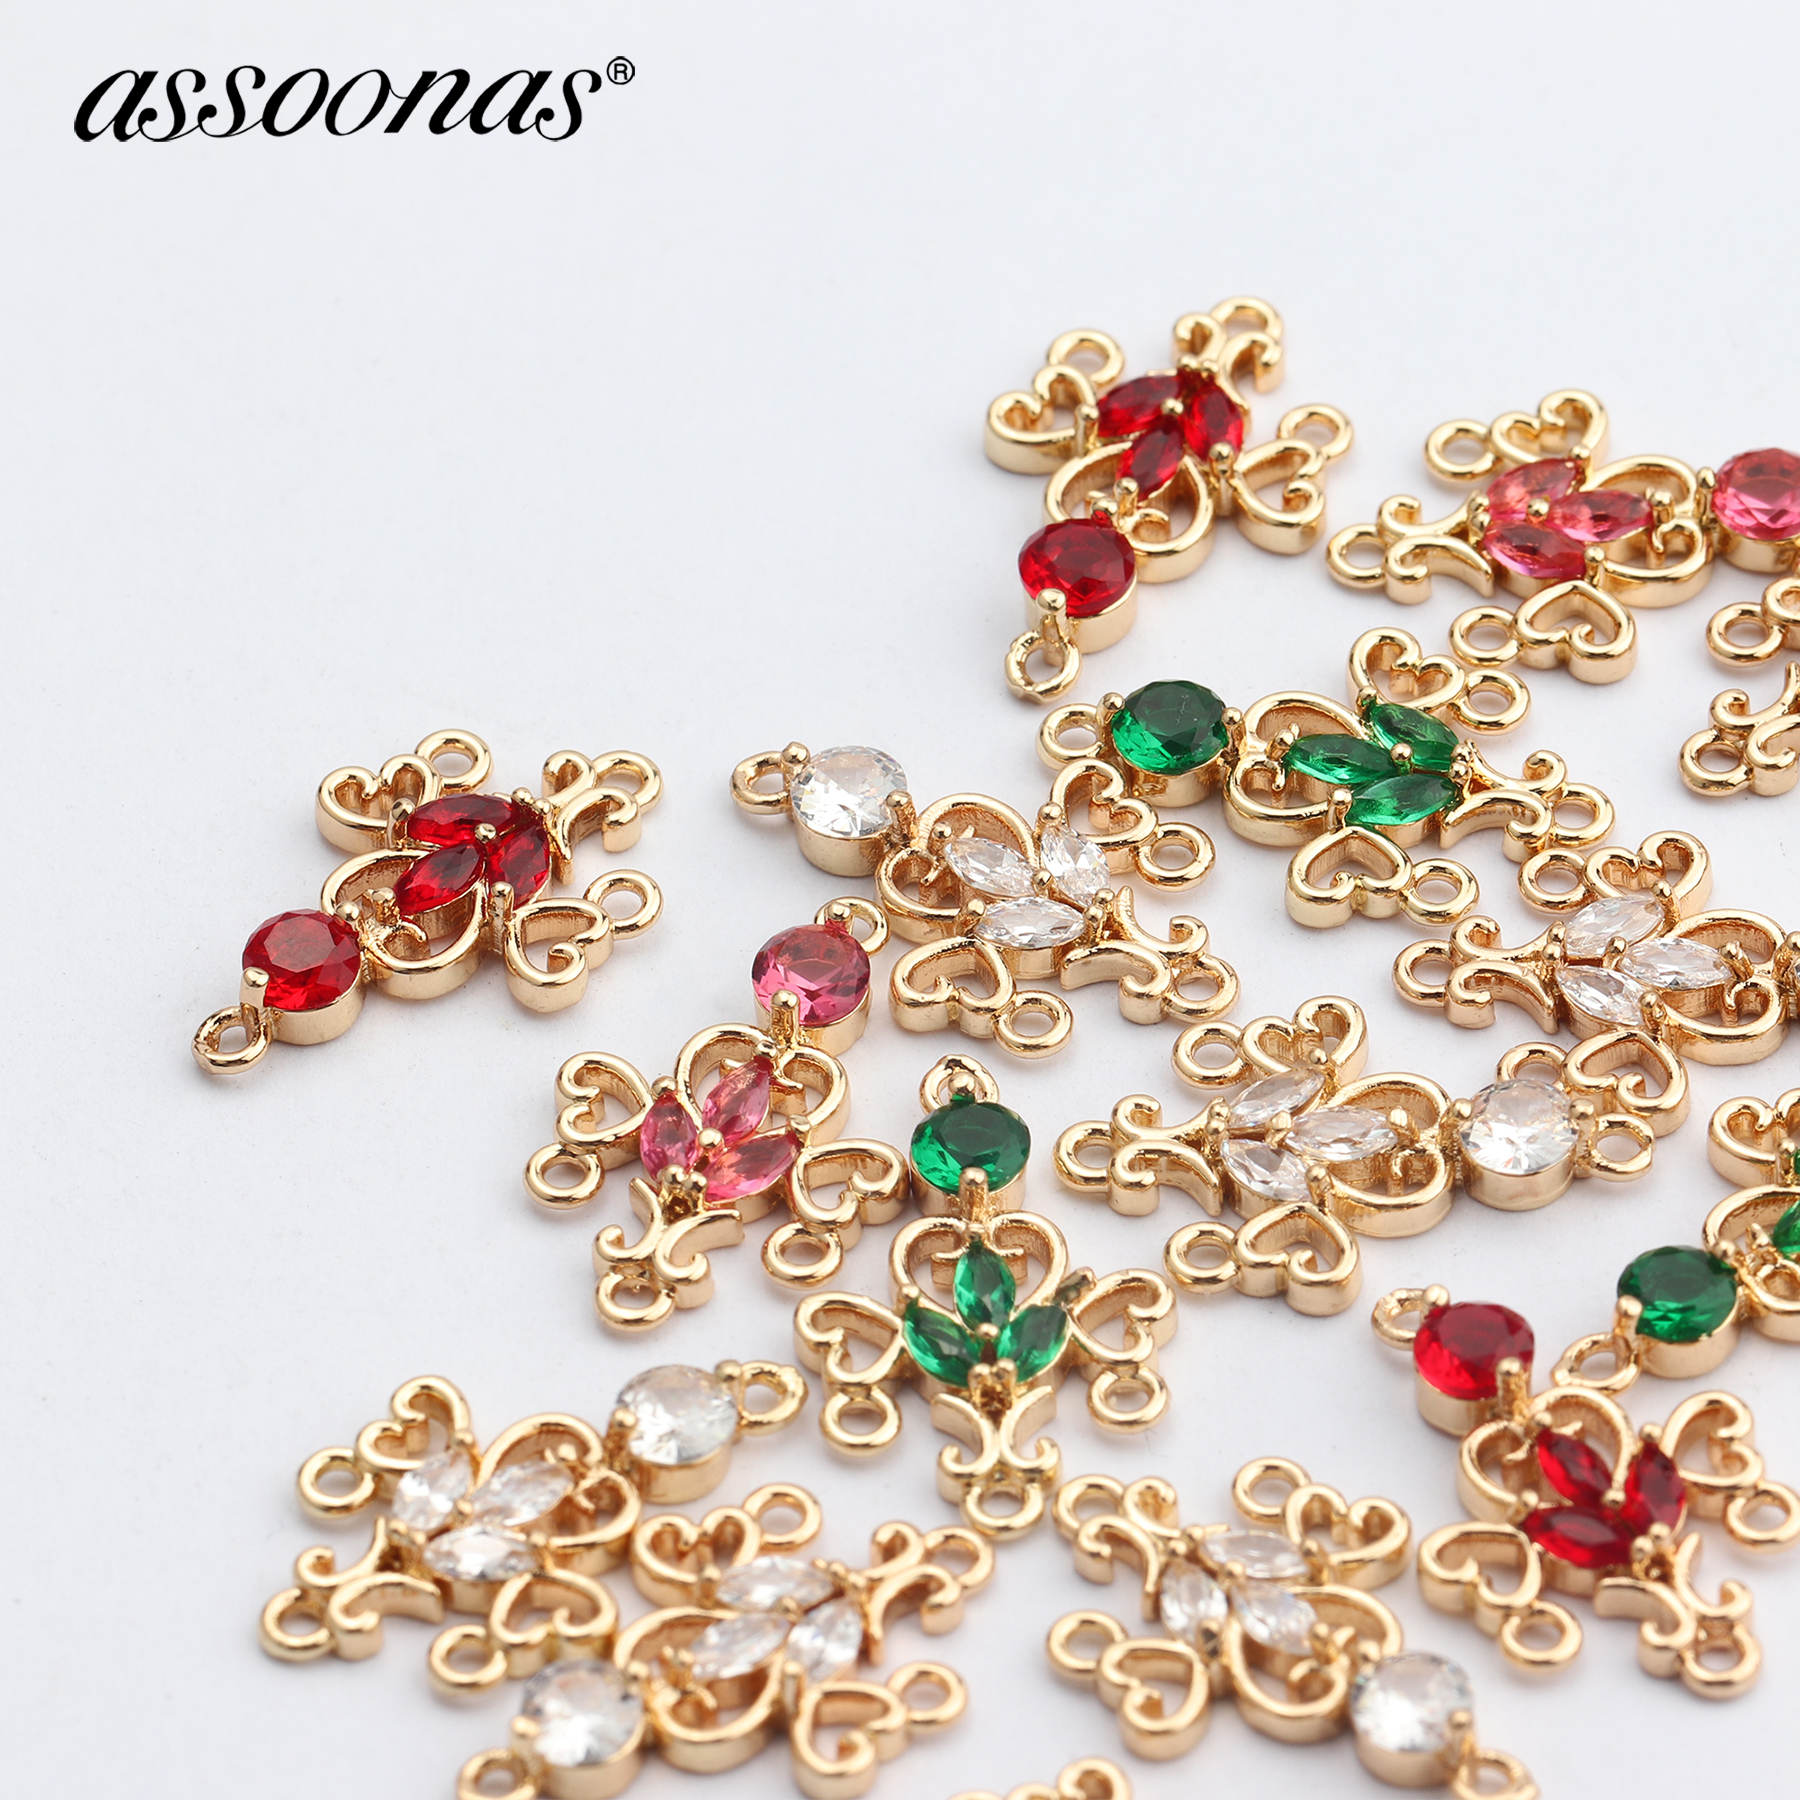 Assoonas M685,jewelry Accessories,diy Zircon Pendant,jewelry Findings,handmade,copper Metal,diy Earring,jewelry Making,10pcs/lot